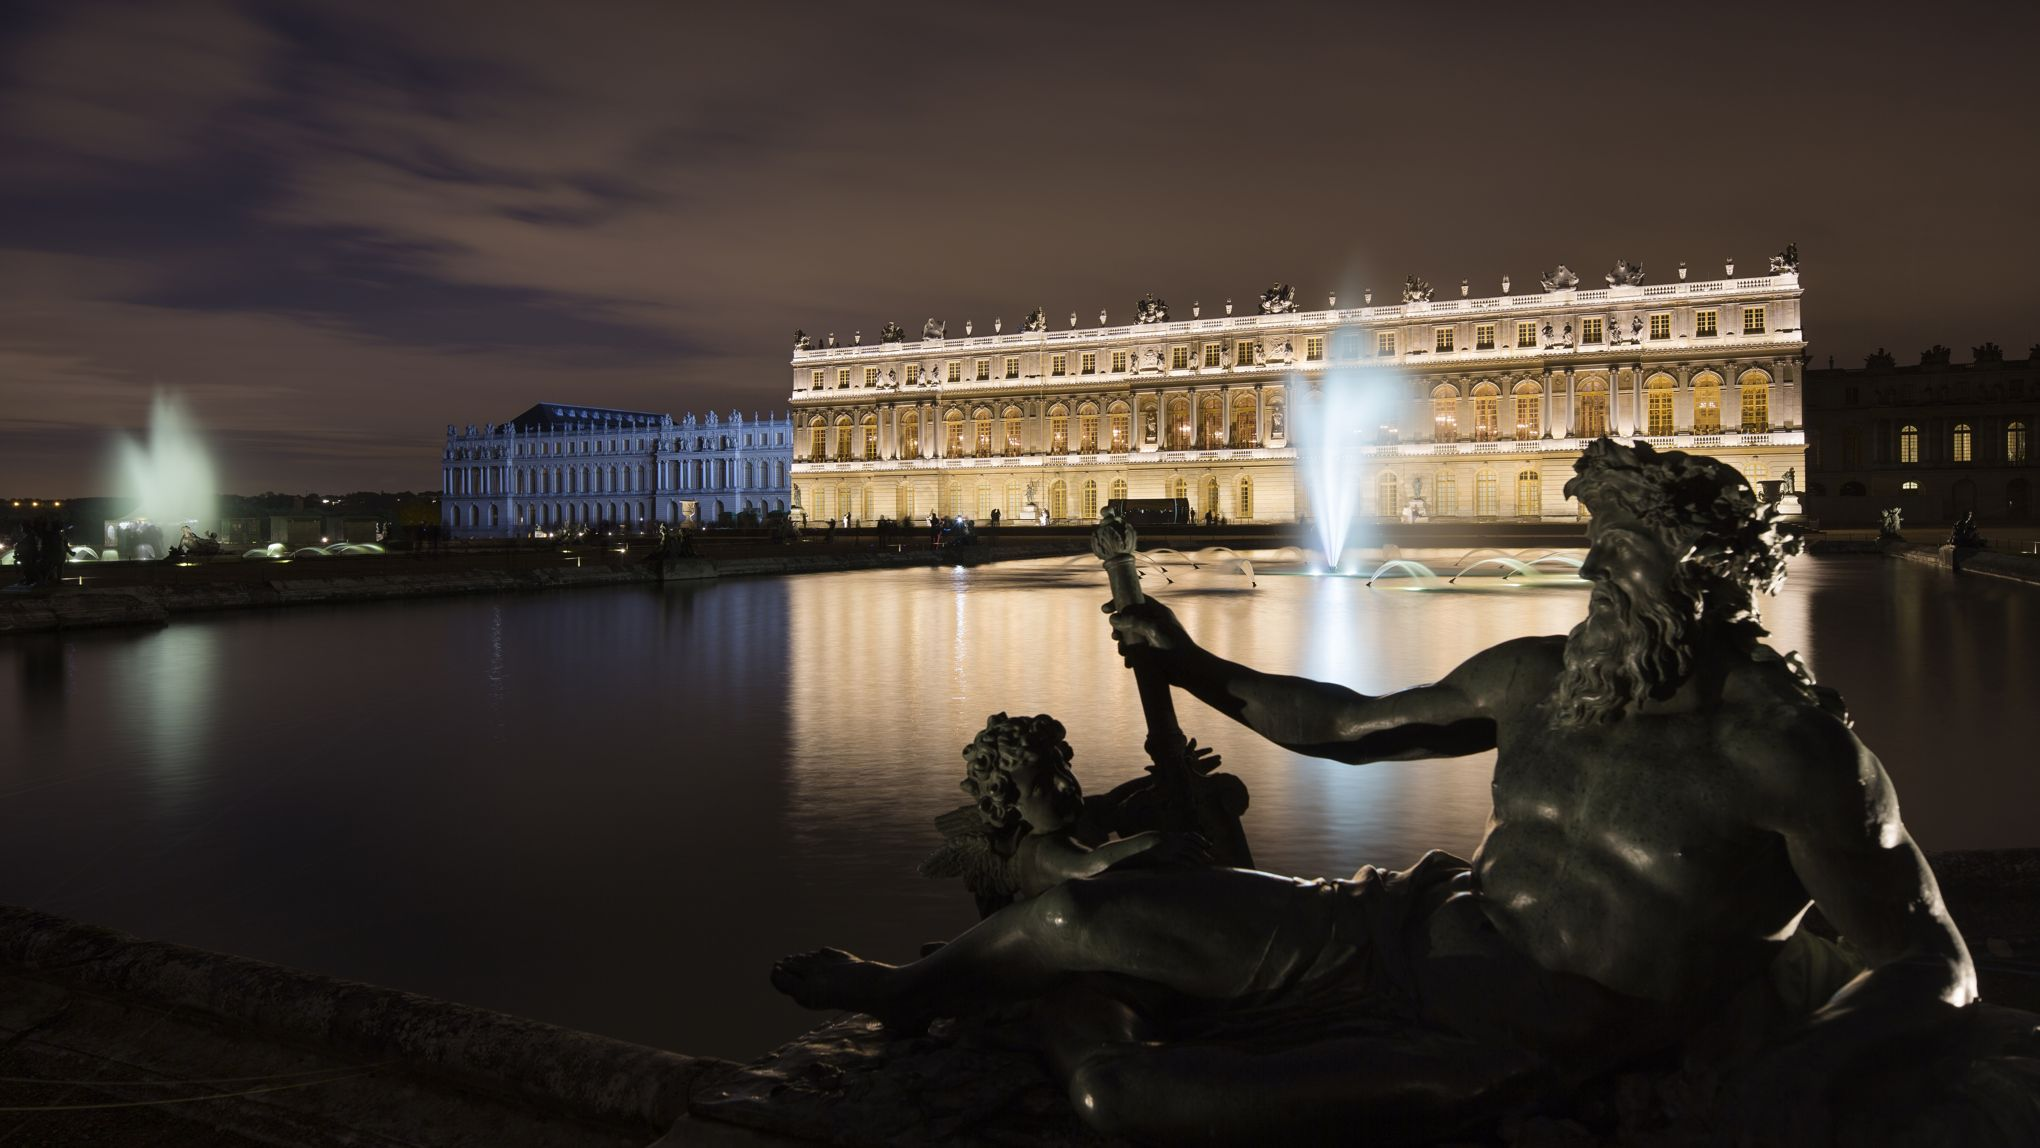 jardin de versailles la f erie des grandes eaux nocturnes. Black Bedroom Furniture Sets. Home Design Ideas